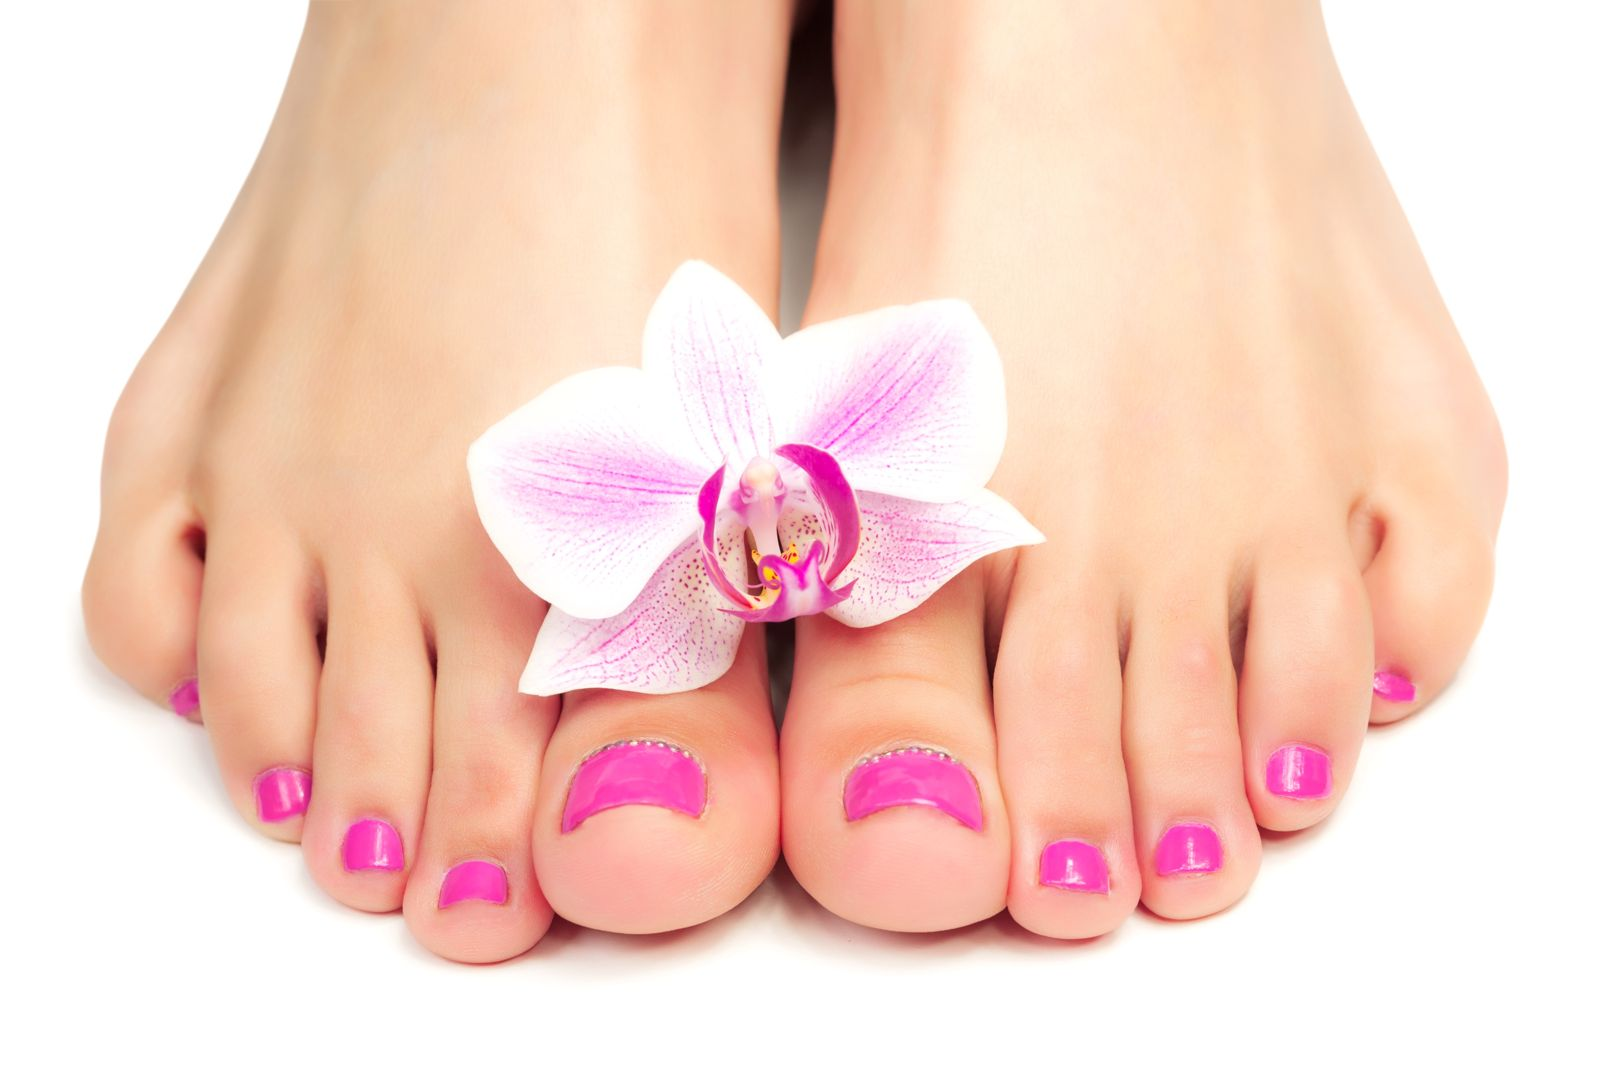 Toenail polish may look great, but it can cause real damage, so it's important to give your feet a break sometimes!